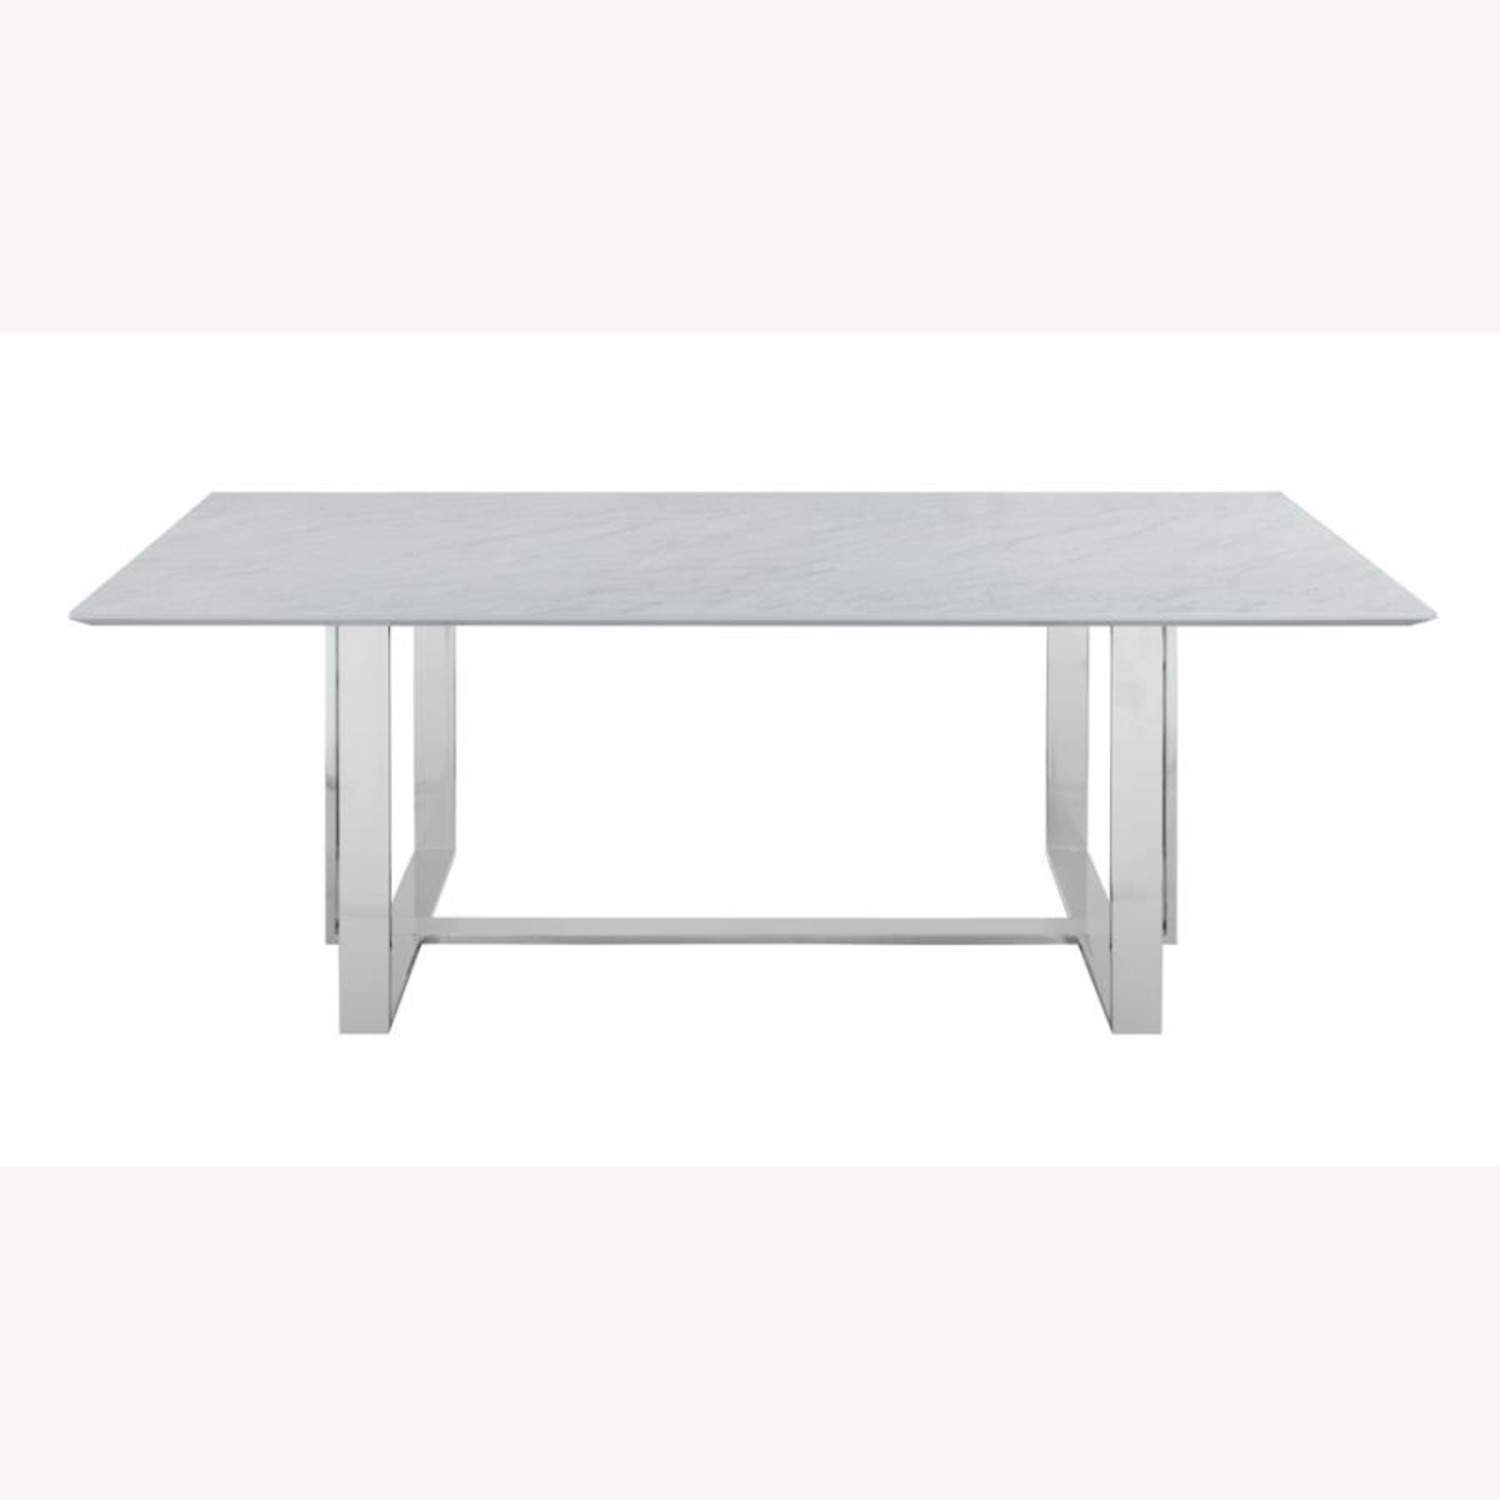 Dining Table In White Thick Tempered Glass Finish - image-1